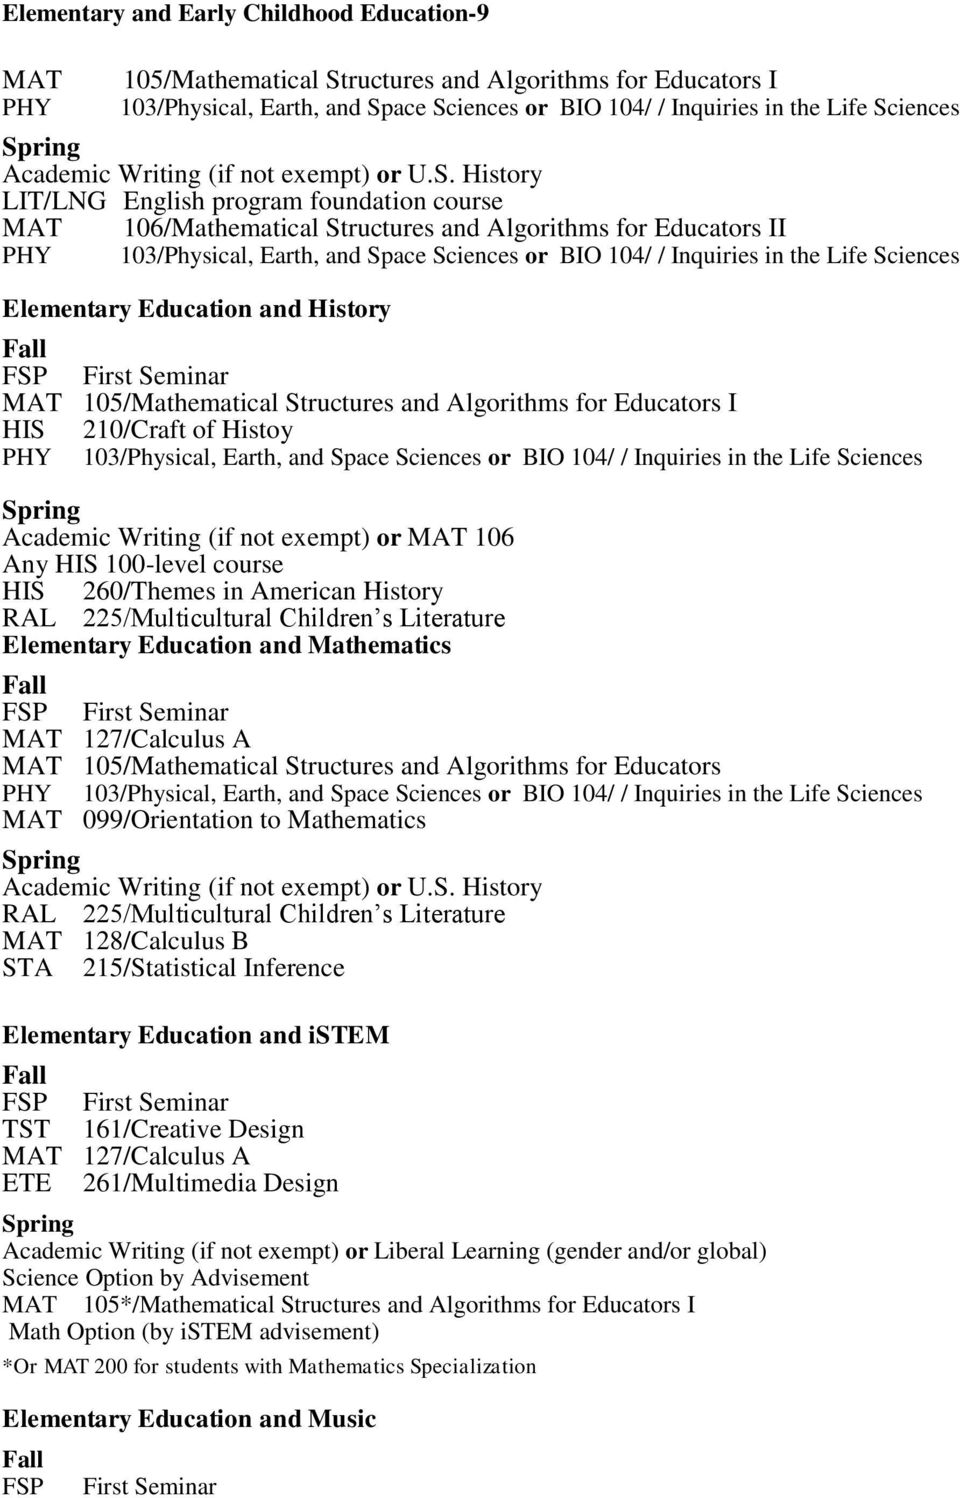 History LIT/LNG English program foundation course MAT 106/Mathematical Structures and Algorithms for Educators II Elementary Education and History HIS 210/Craft of Histoy Academic Writing (if not